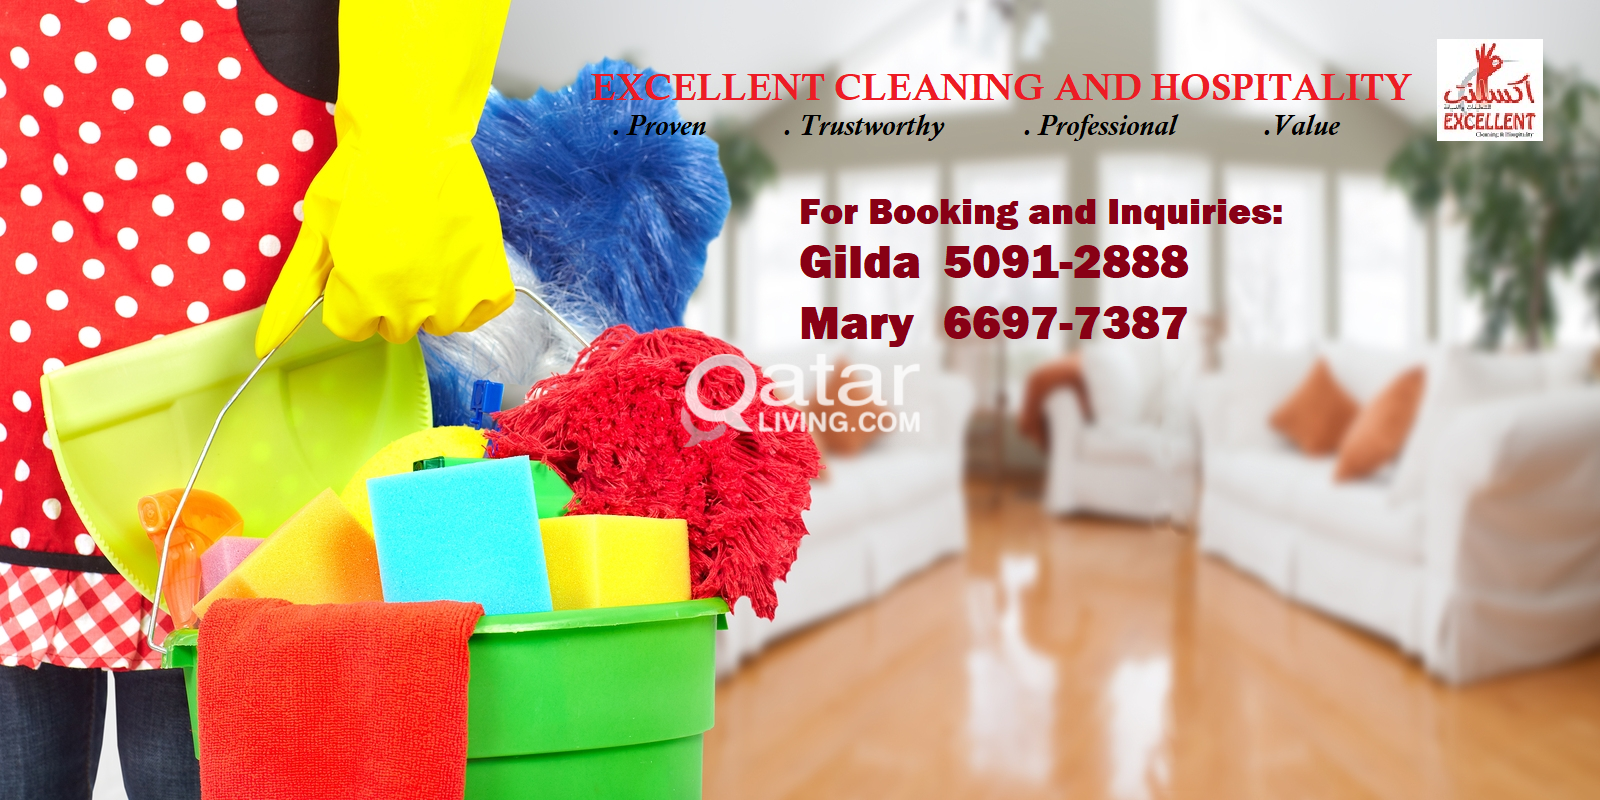 Excellent Cleaning and Hospitality 66977-387